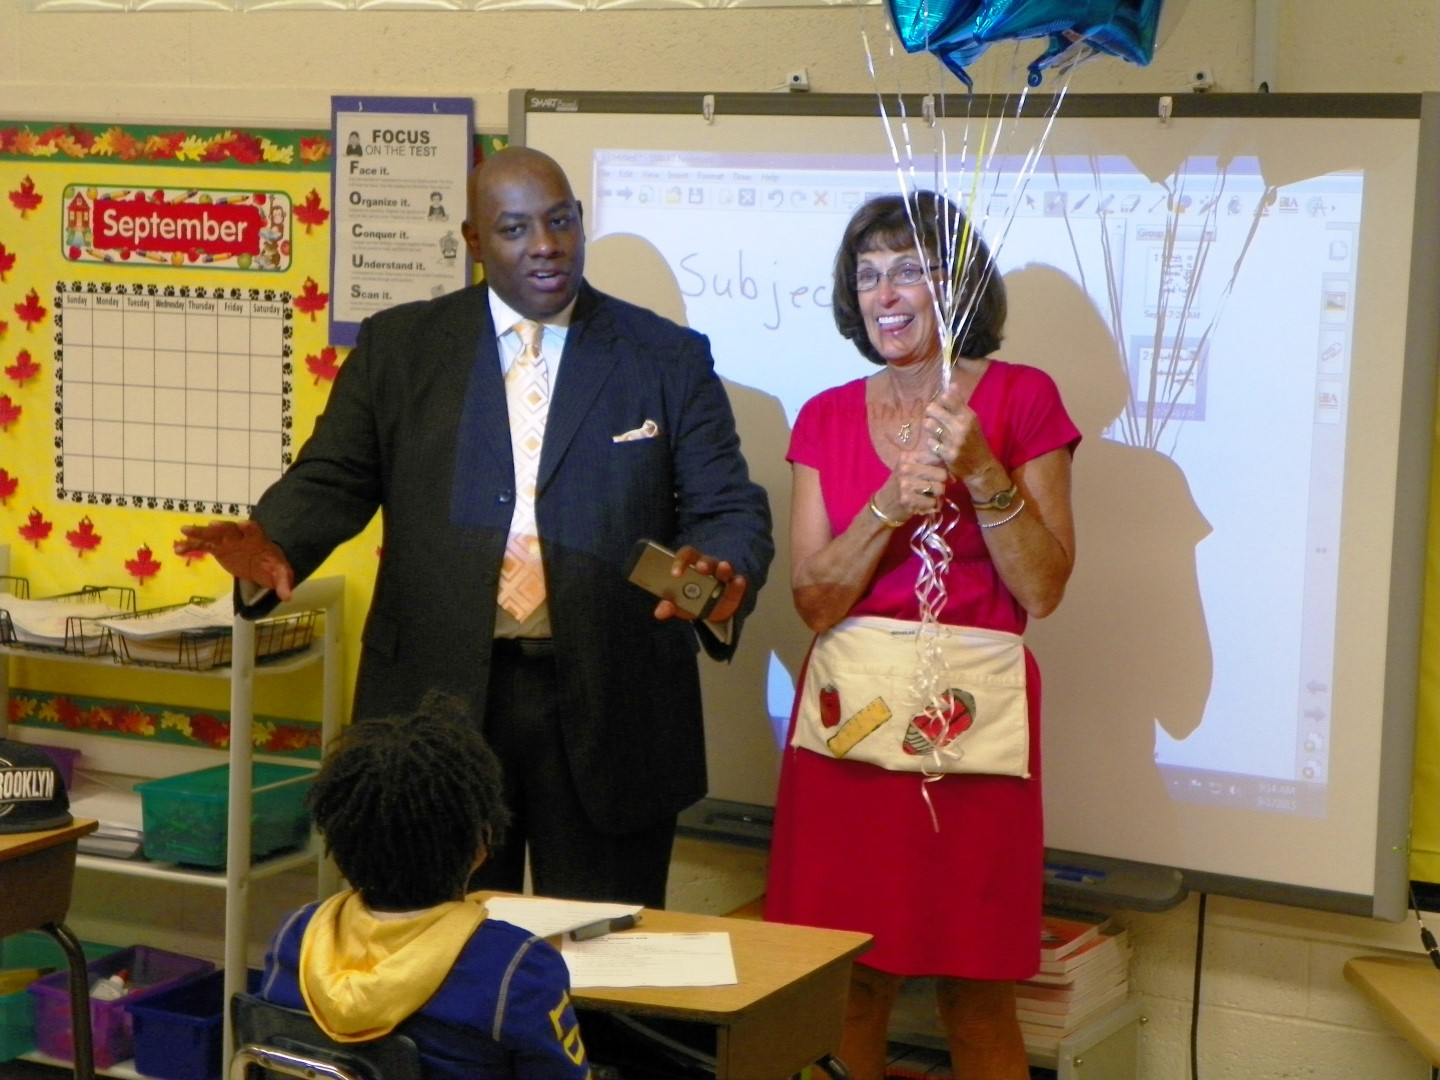 Mt. Juliet Middle principal and Franklin High grad to replace Mel Brown at  Mt. Juliet High